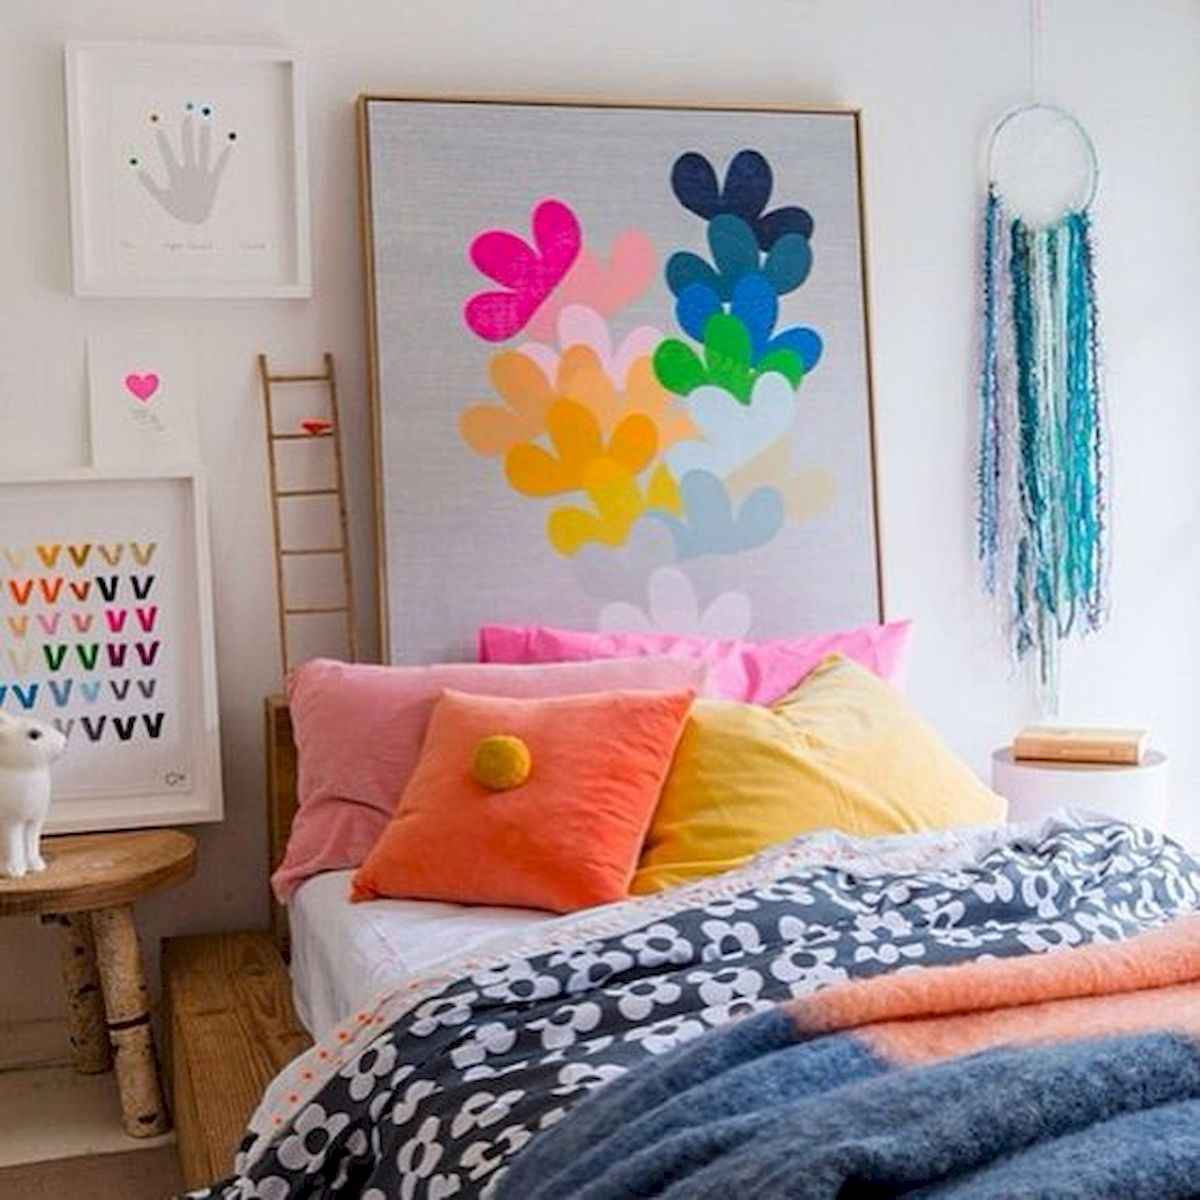 70+ Amazing Colorful Bedroom Decor Ideas And Remodel for Summer Project (58)